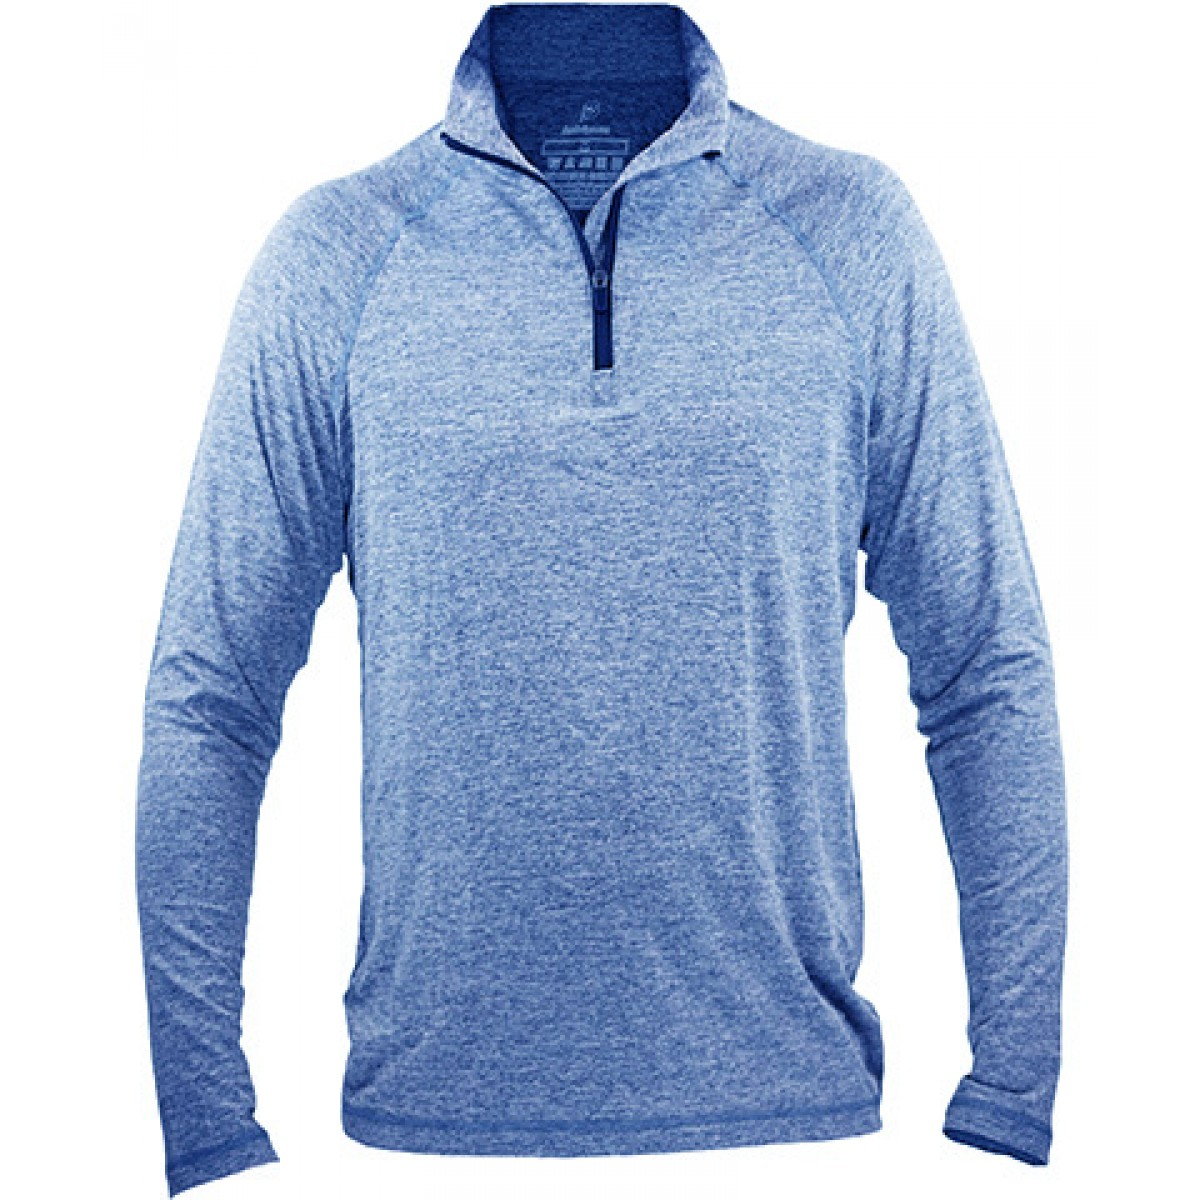 Fine Designs Blend 1/4-Zip Pullover-Blue-M